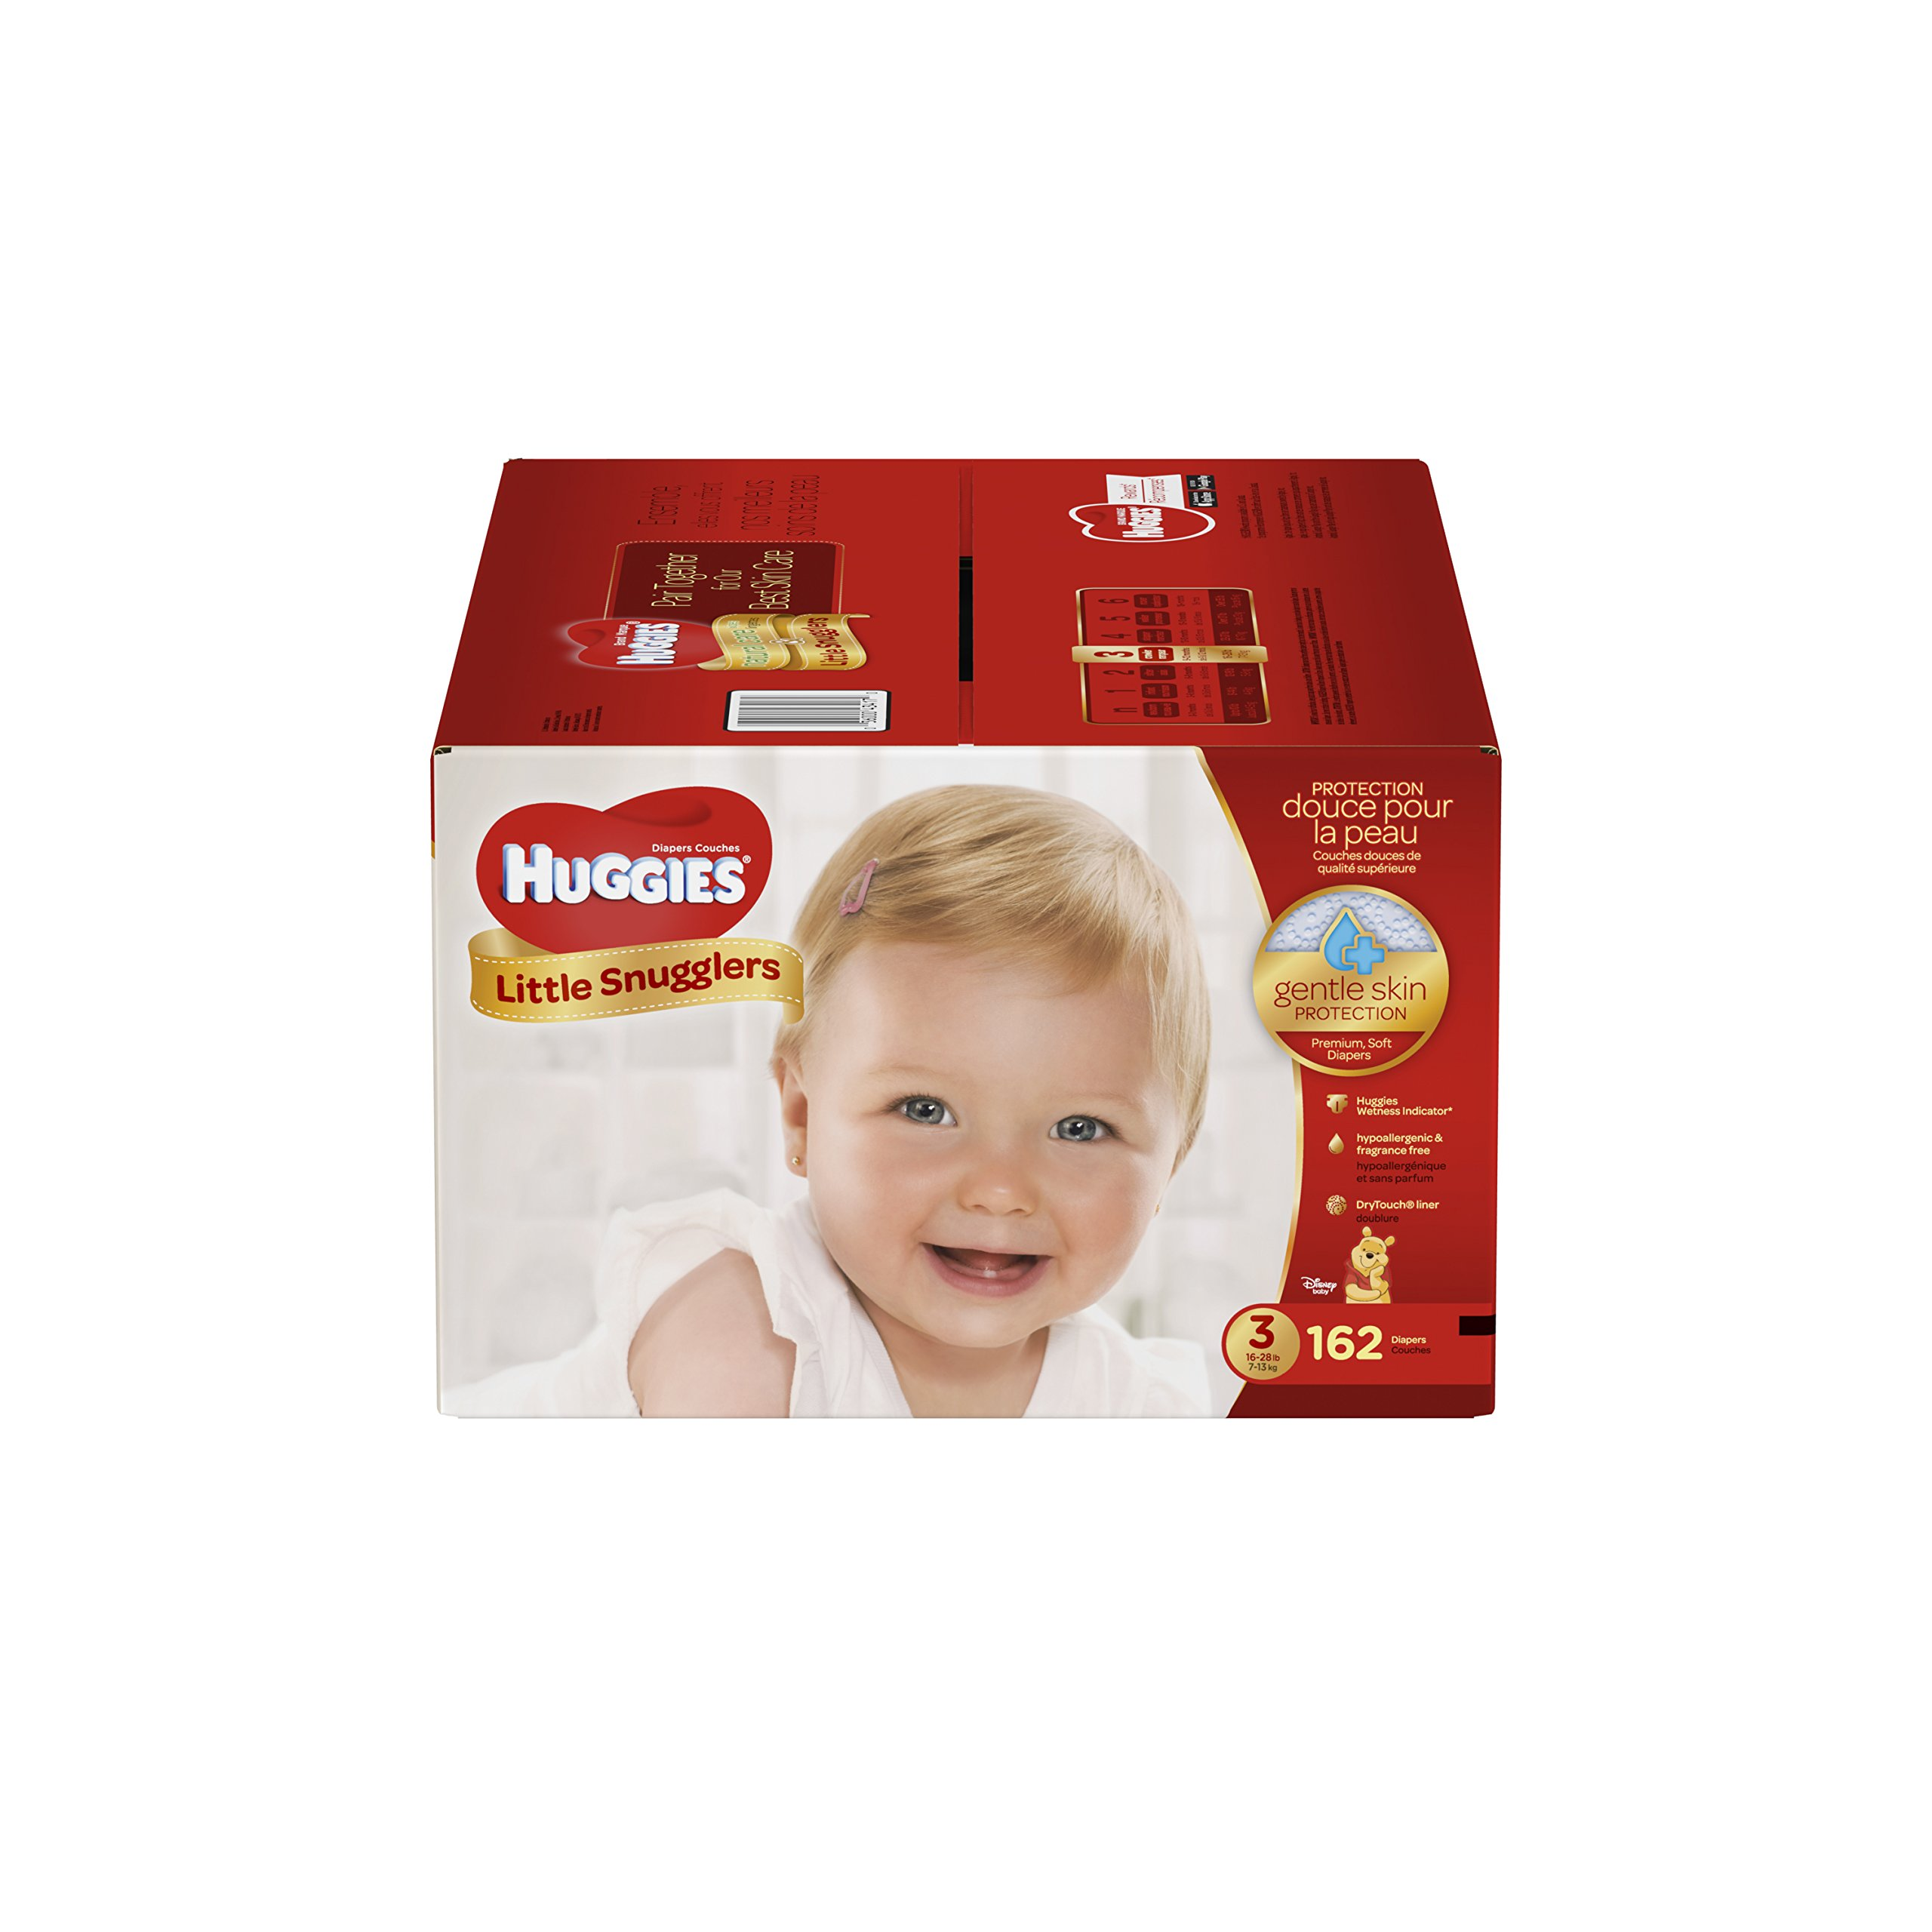 Get Quotations · Huggies Little Snugglers Baby Diapers, Size 3, 162 Count,  ECONOMY PLUS (Packaging